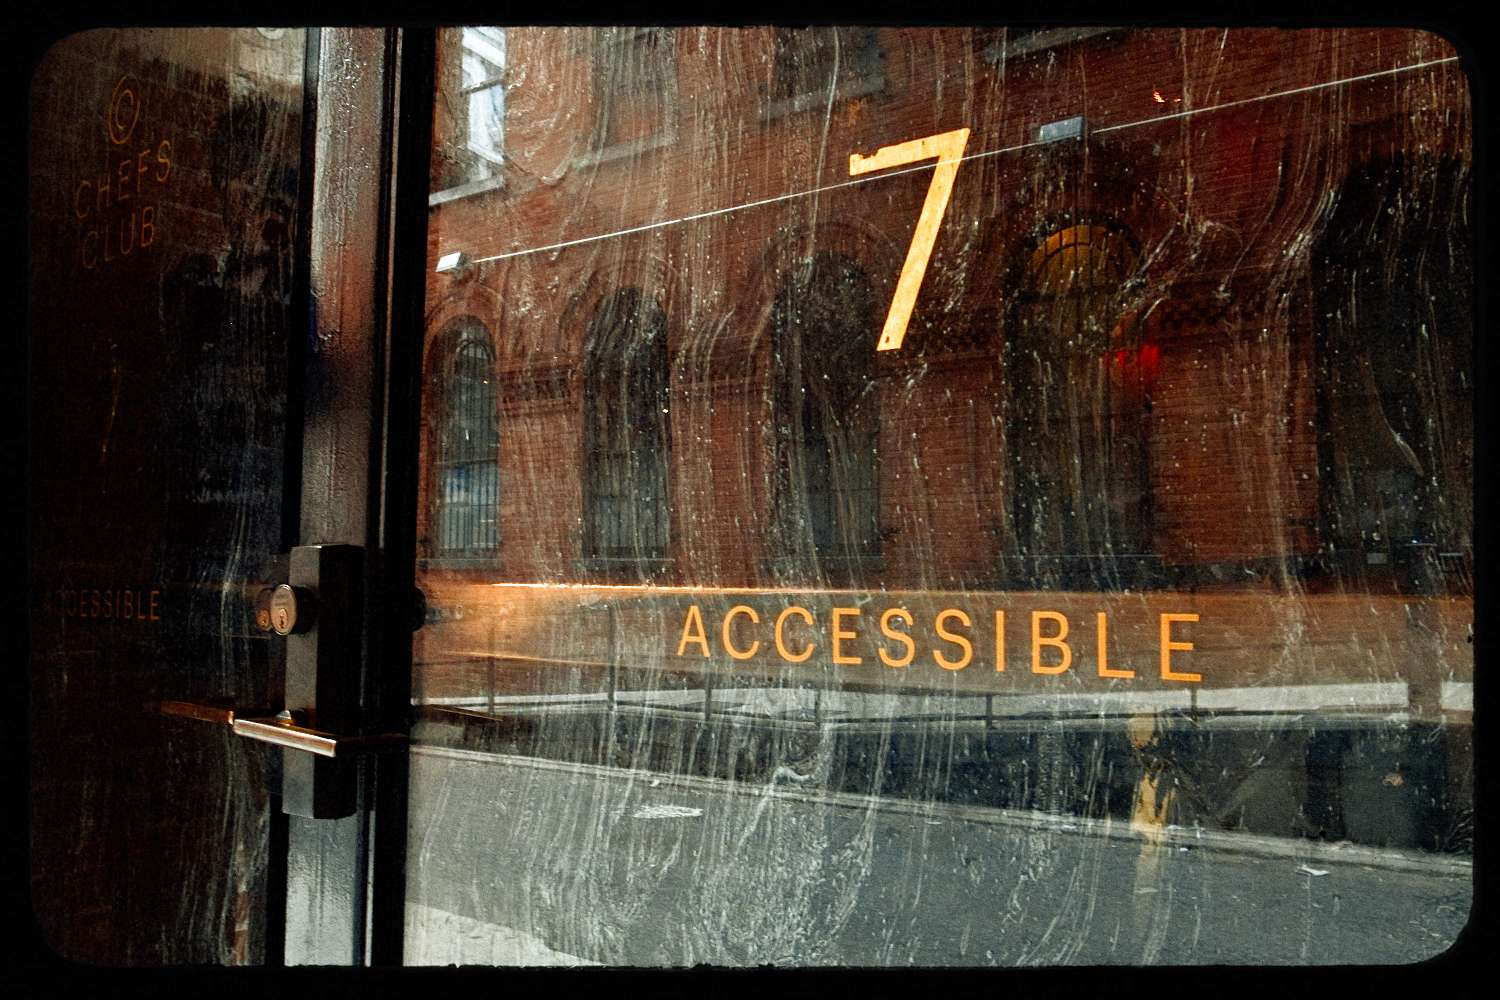 7 Accessible